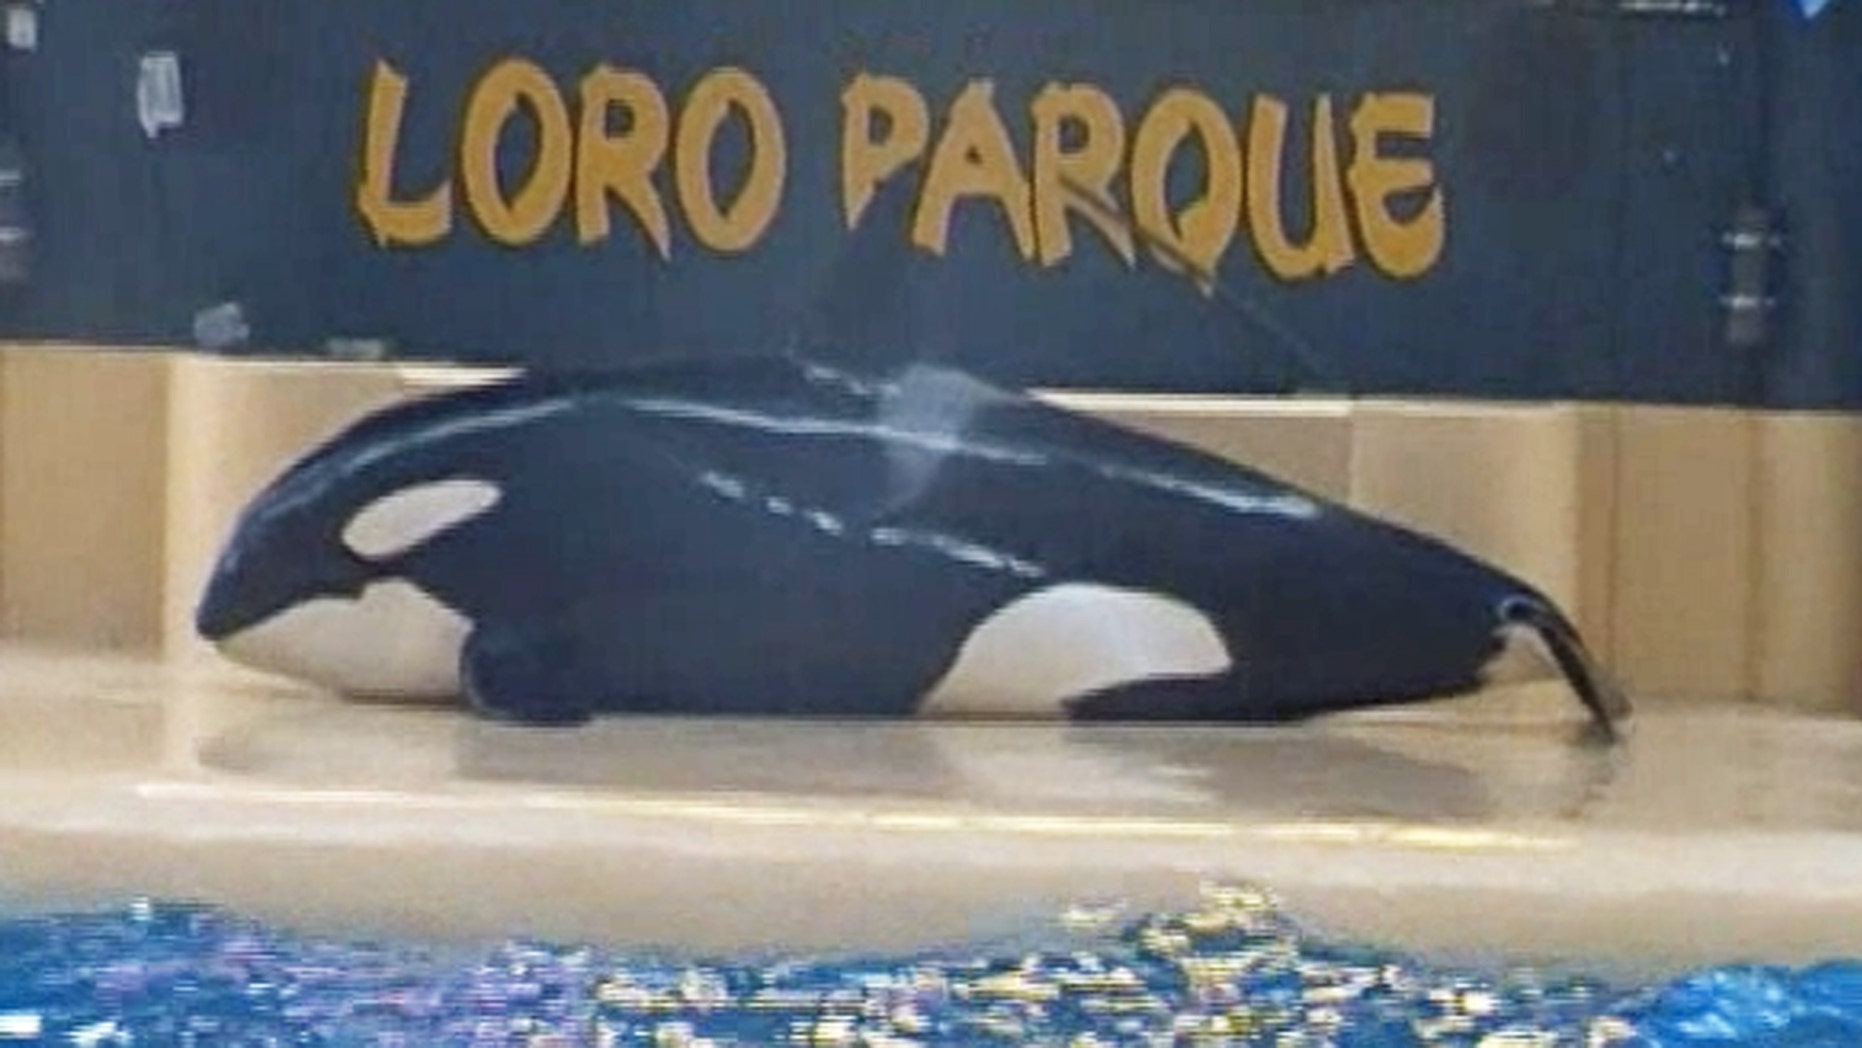 Morgan, a SeaWorld-owned orca, is seen on a concrete slab at Loro Parque, a theme park in Tenerife, Spain.